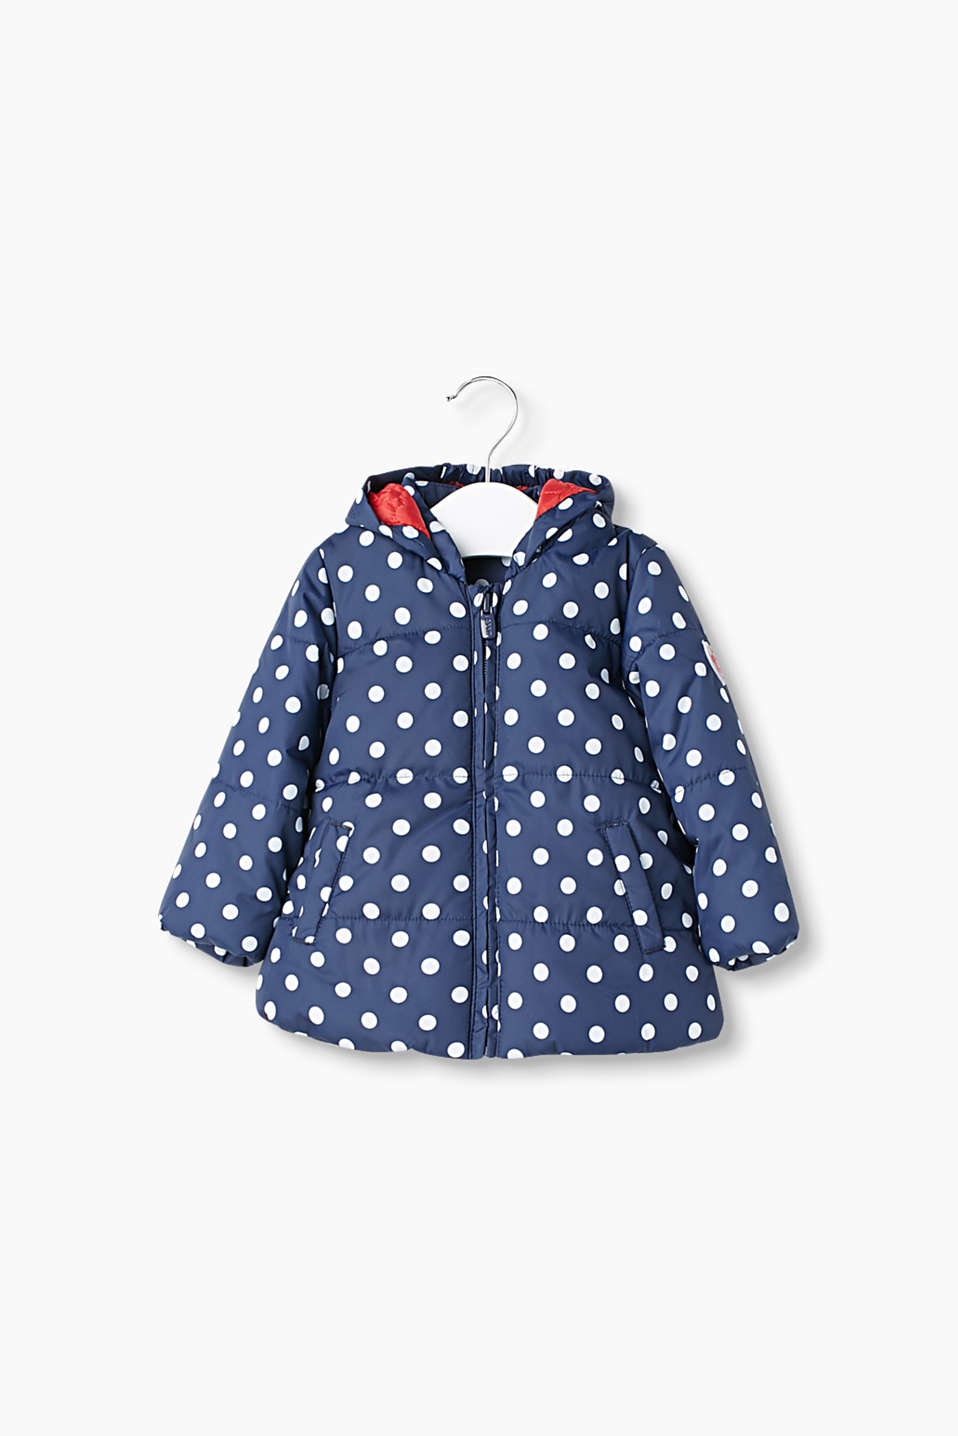 Padded jacket with a charming polka dot pattern and fixed hood